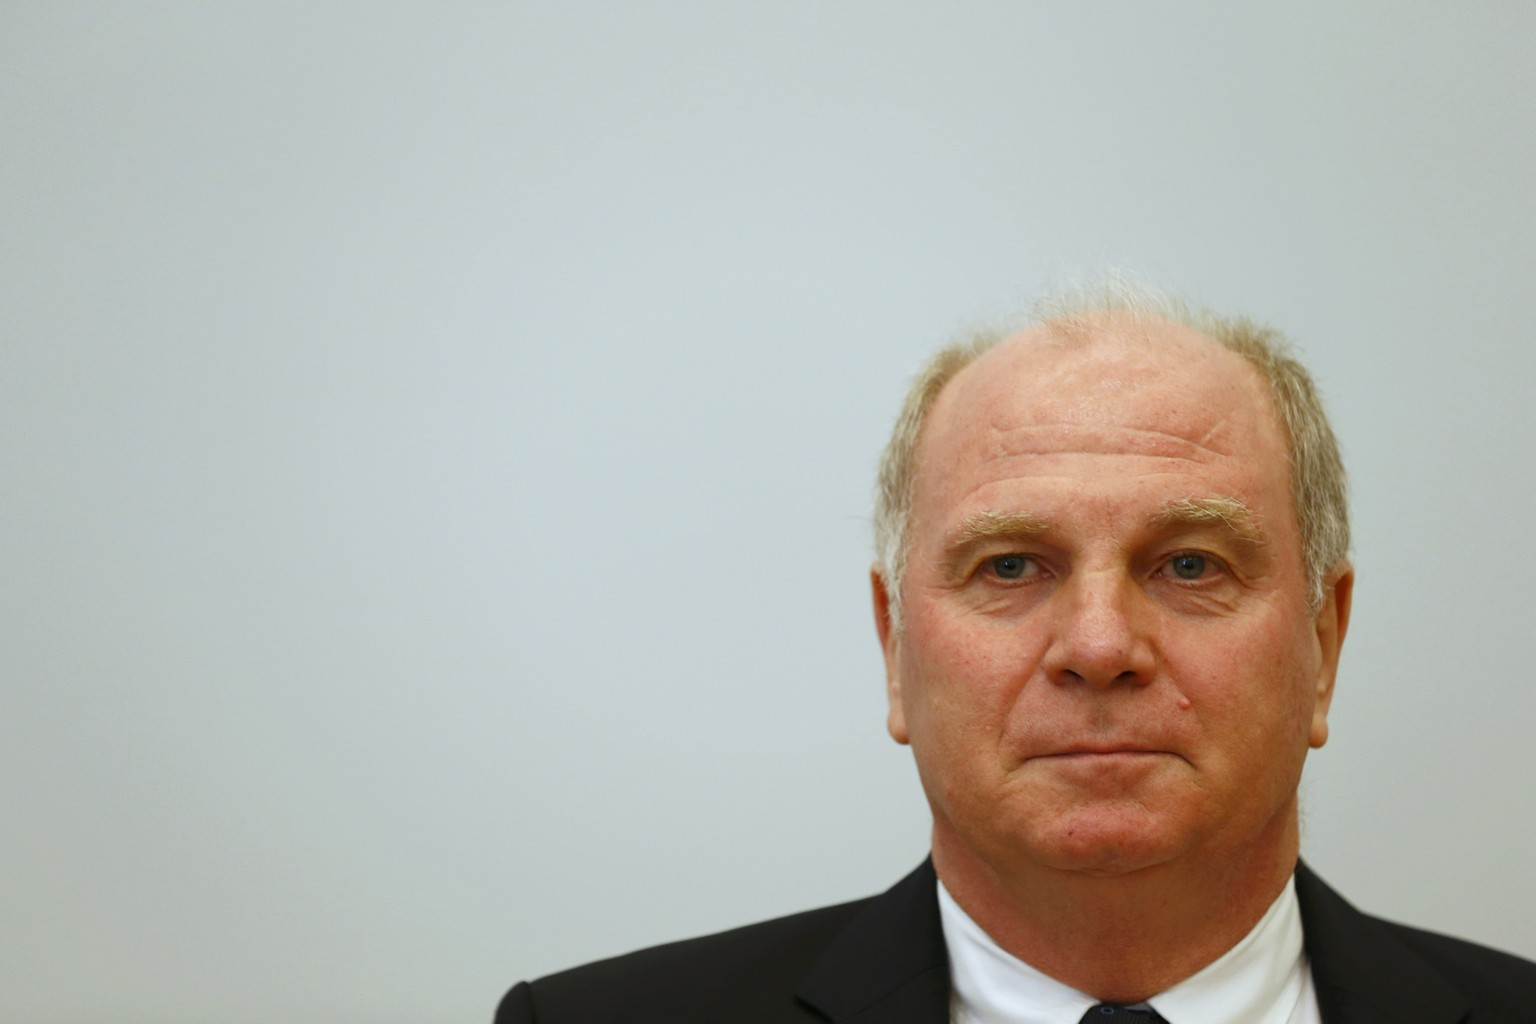 Bayern Munich President Uli Hoeness arrives for the second day of his trial for tax evasion at the regional court in Munich March 11, 2014. Hoeness stunned a German court on Monday by admitting he had evaded taxes of 18.5 million euros ($26 million) using a secret Swiss bank account - more than five times the amount on a prosecutors' charge sheet.  Once one of Germany's most admired managers, Hoeness apologised and appealed for leniency at the start of a trial in a case that shocked Germany and prompted other tax dodgers to turn themselves in. Hoeness could be sentenced to between five and 10 years in jail if convicted of evading more than 1 million euros in taxes.                             REUTERS/Michael Dalder (GERMANY  - Tags: SPORT SOCCER CRIME LAW BUSINESS TPX IMAGES OF THE DAY)